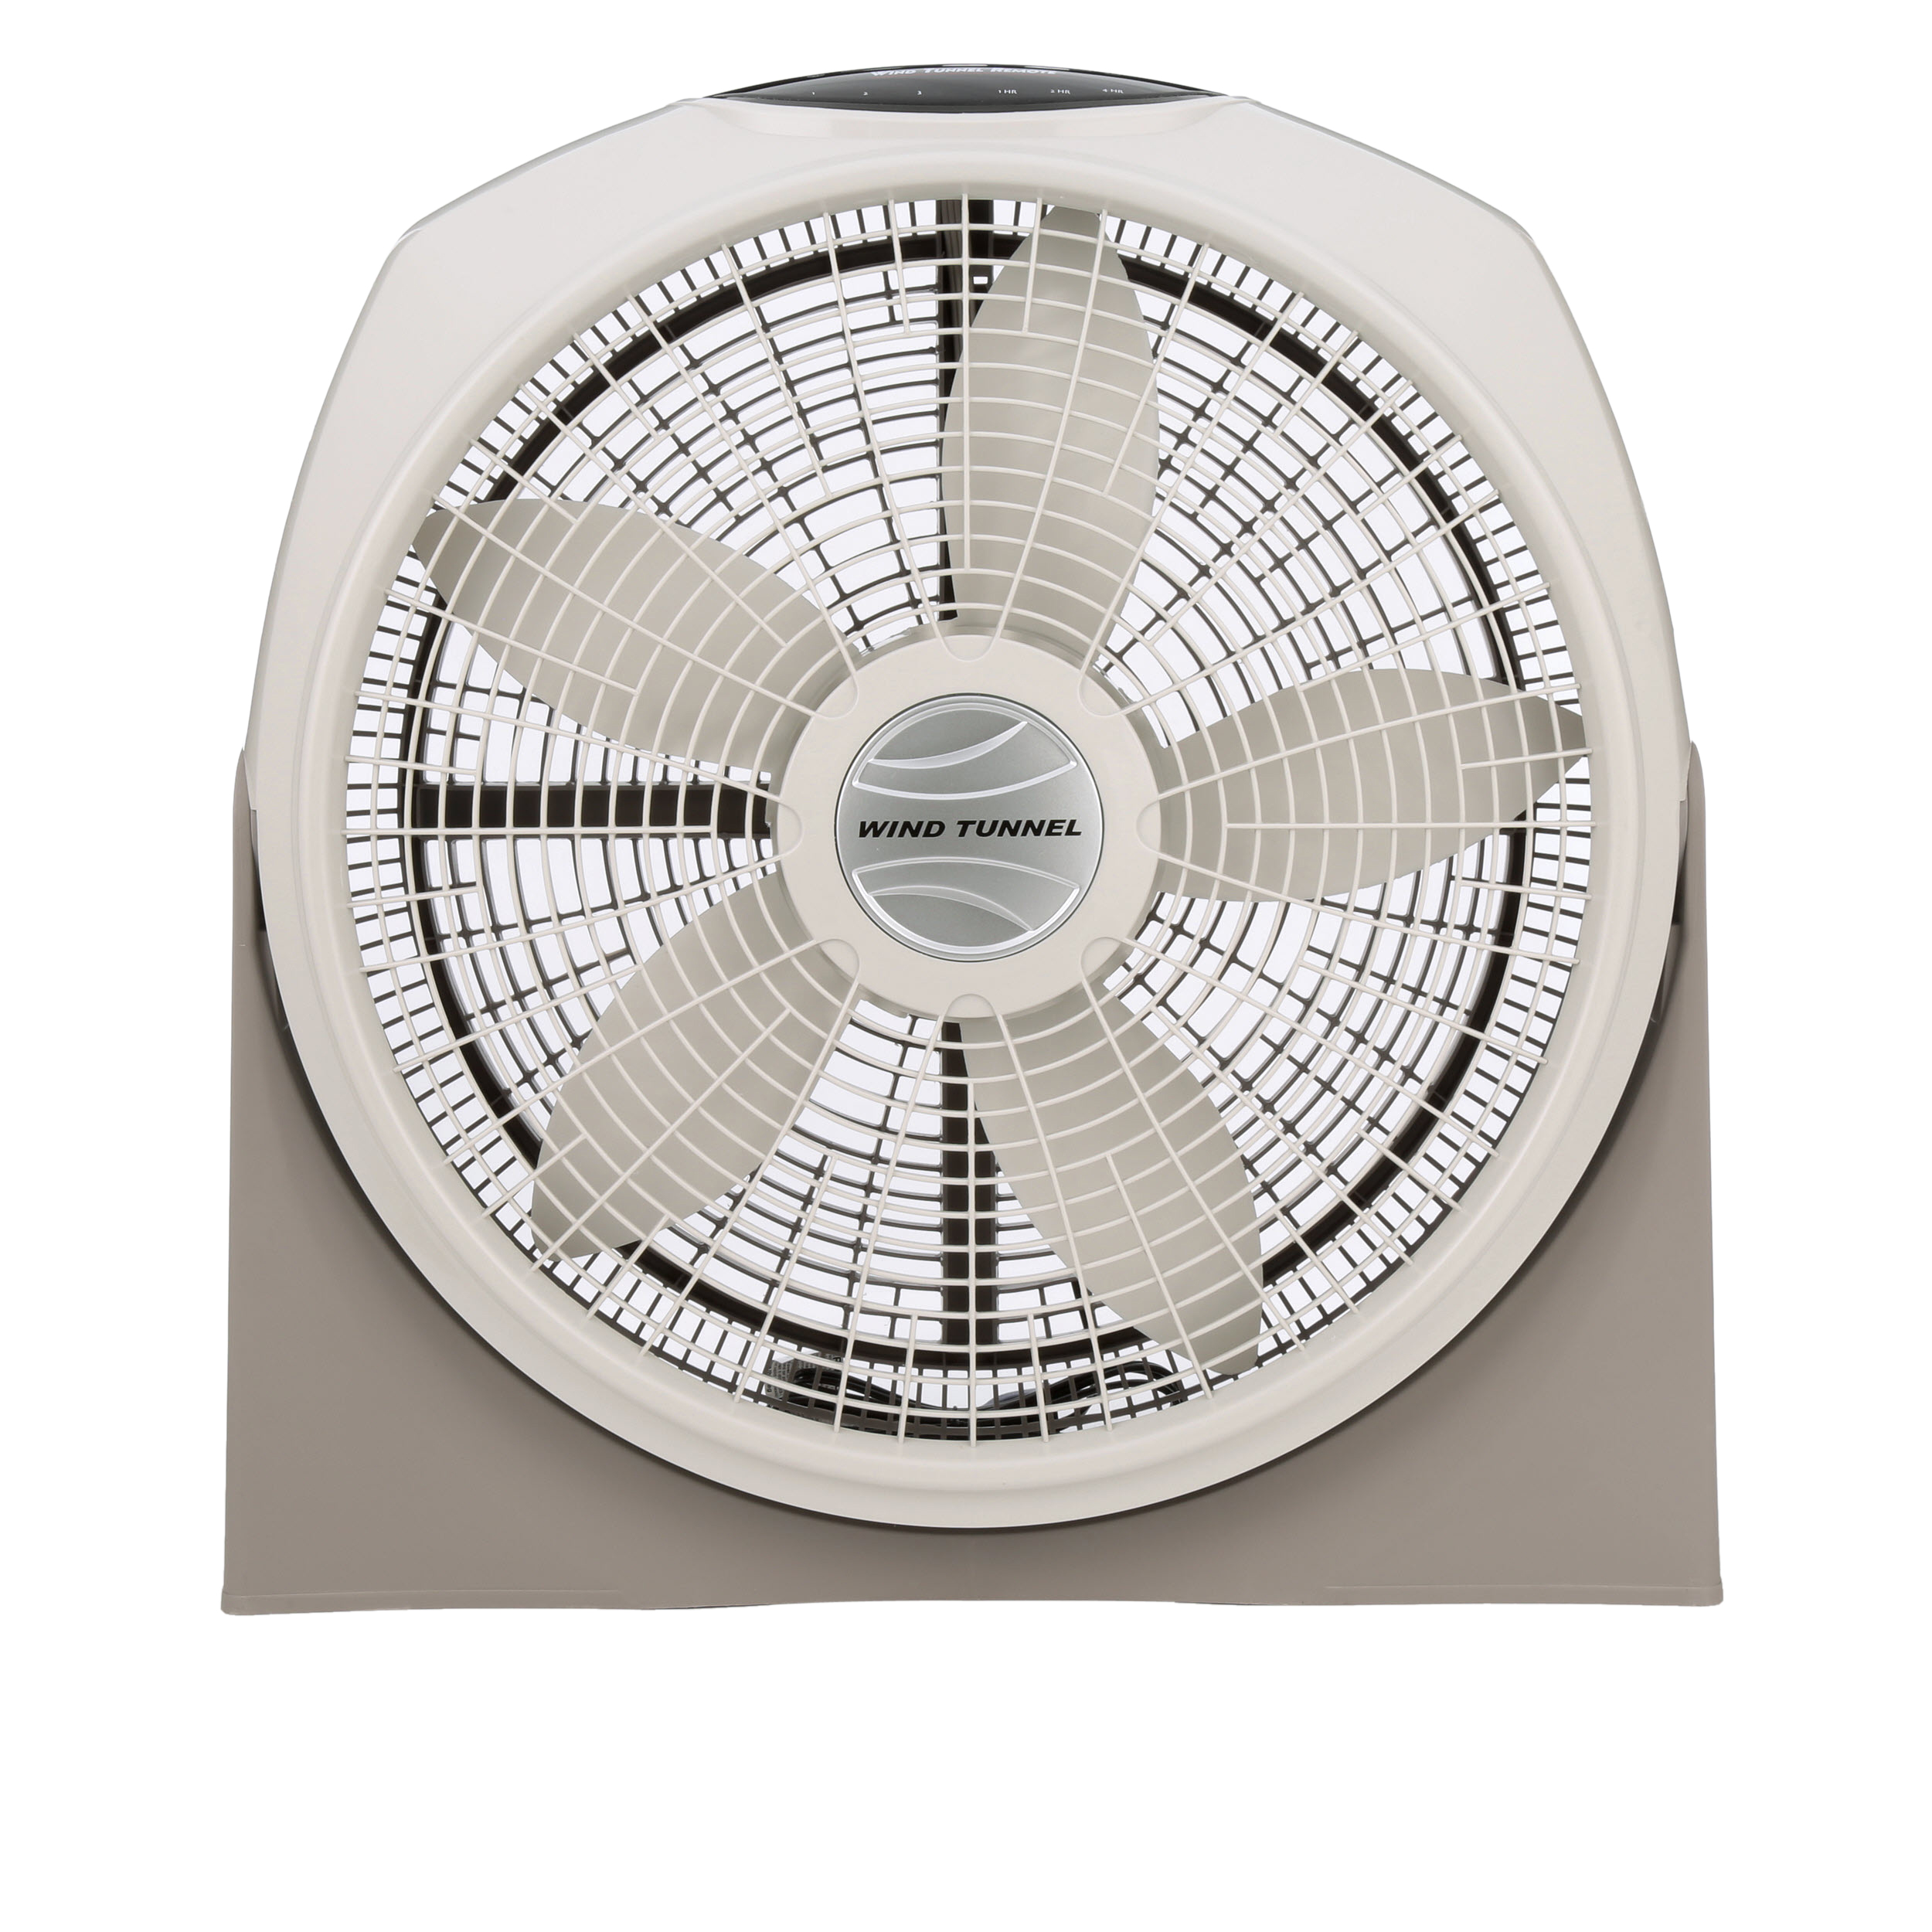 "Lasko 20"" Wind Tunnel 3-Speed Fan, Model #A20700, Gray with Remote"